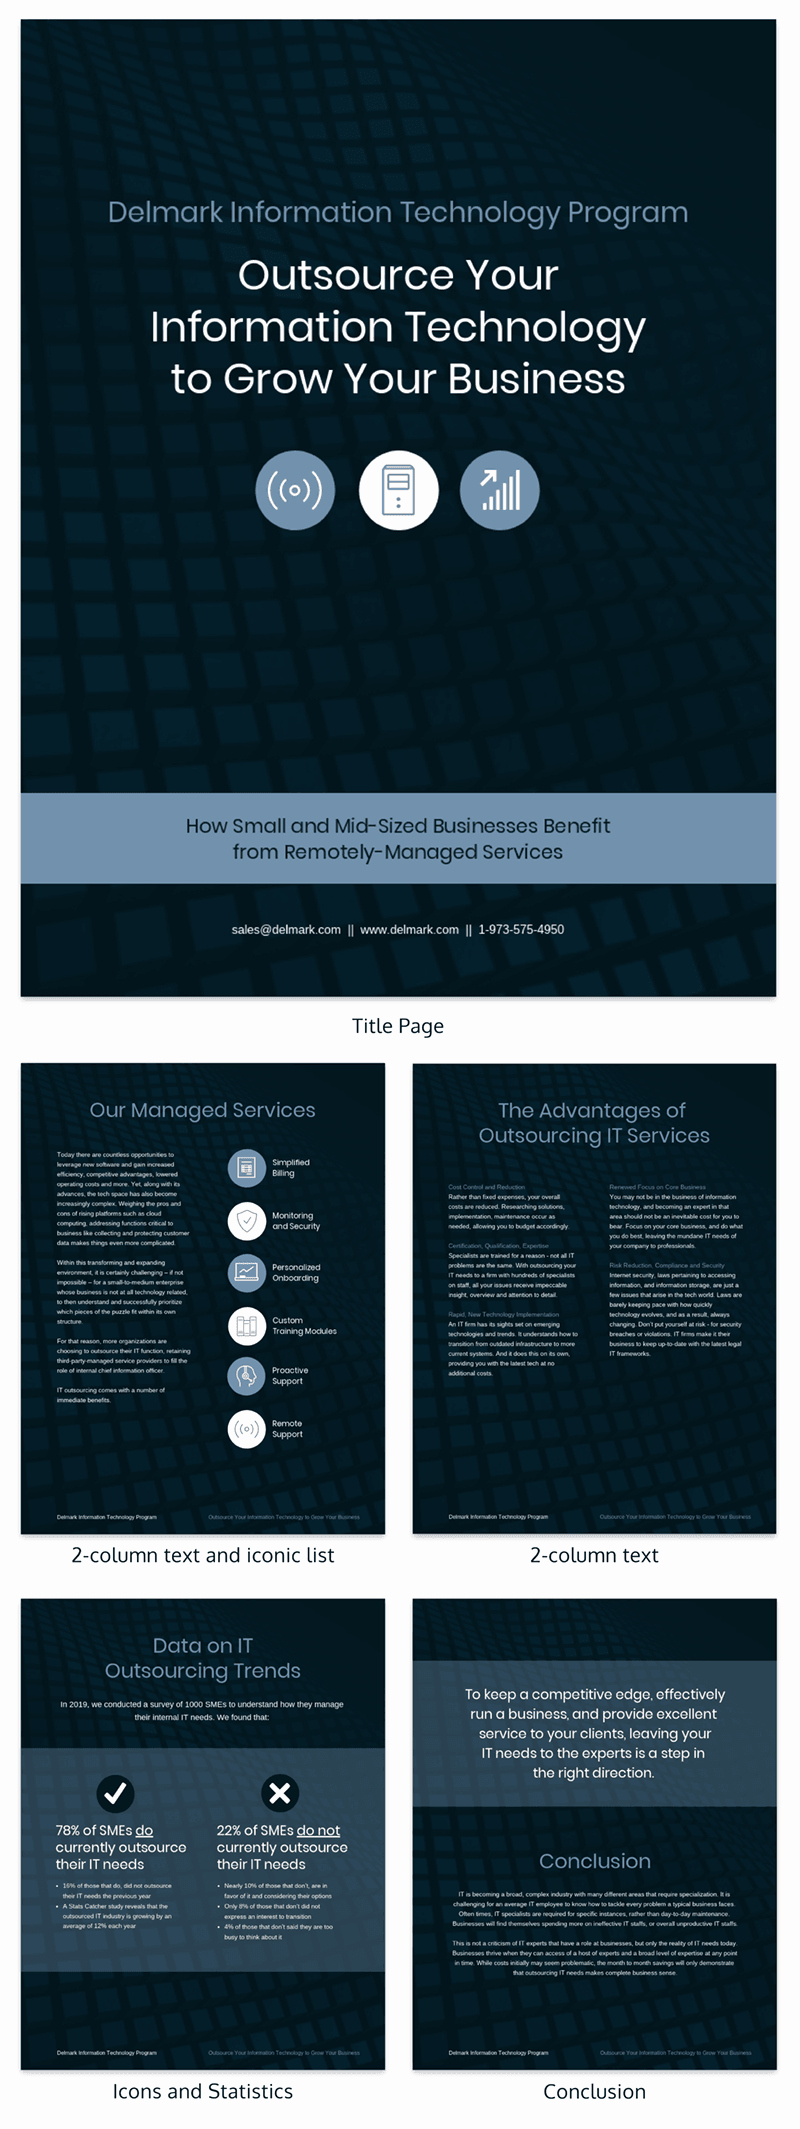 White Paper Template Word Luxury 20 Page Turning White Paper Examples [design Guide